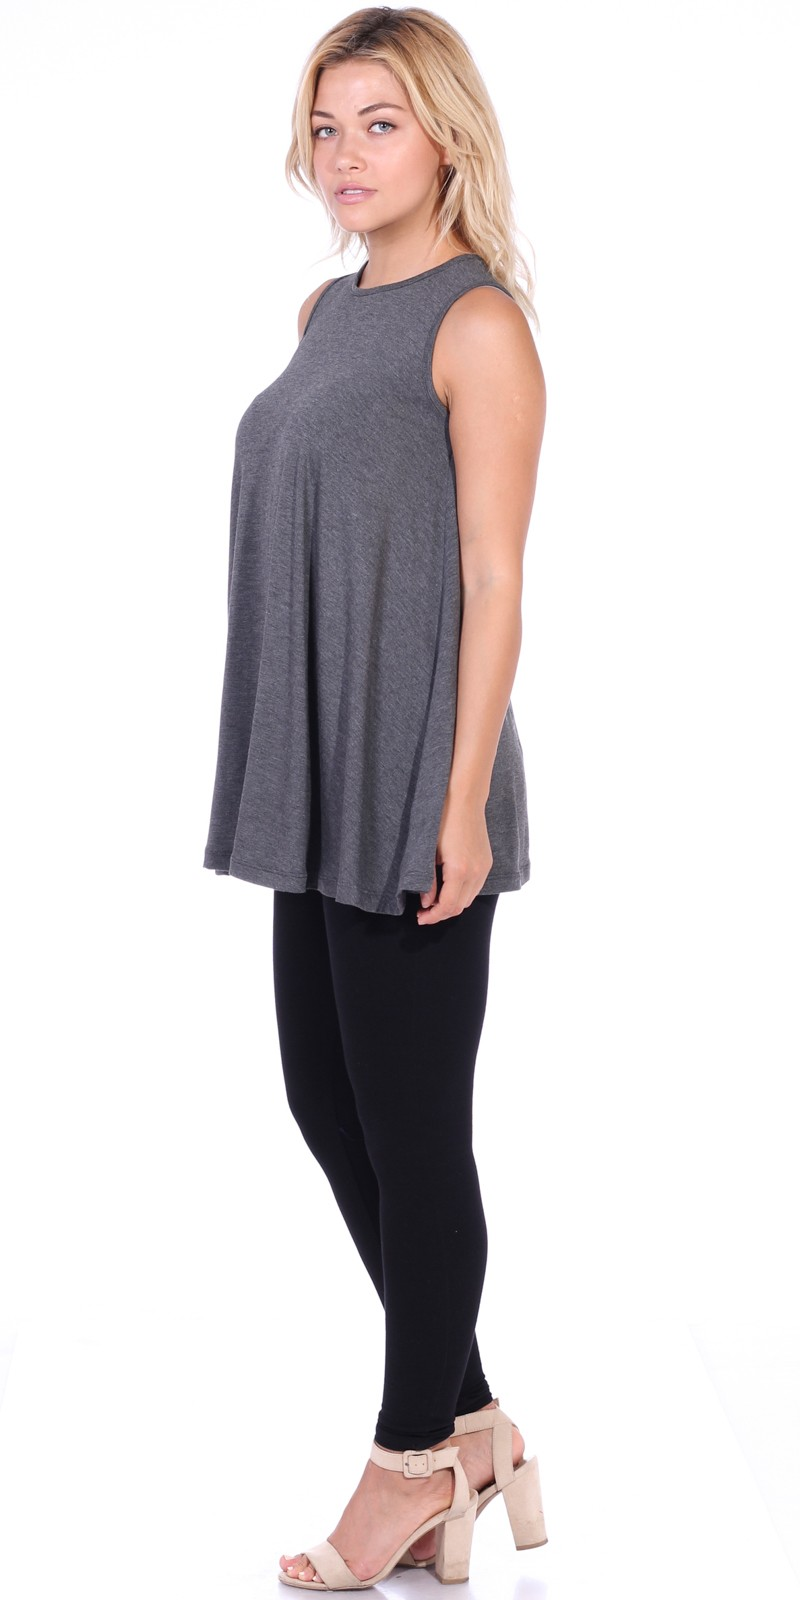 Description & Details. Designed to flatter with easy, pull-on styling, a slimming front-contour waistband, all-around elastic and wide hems with side slits.